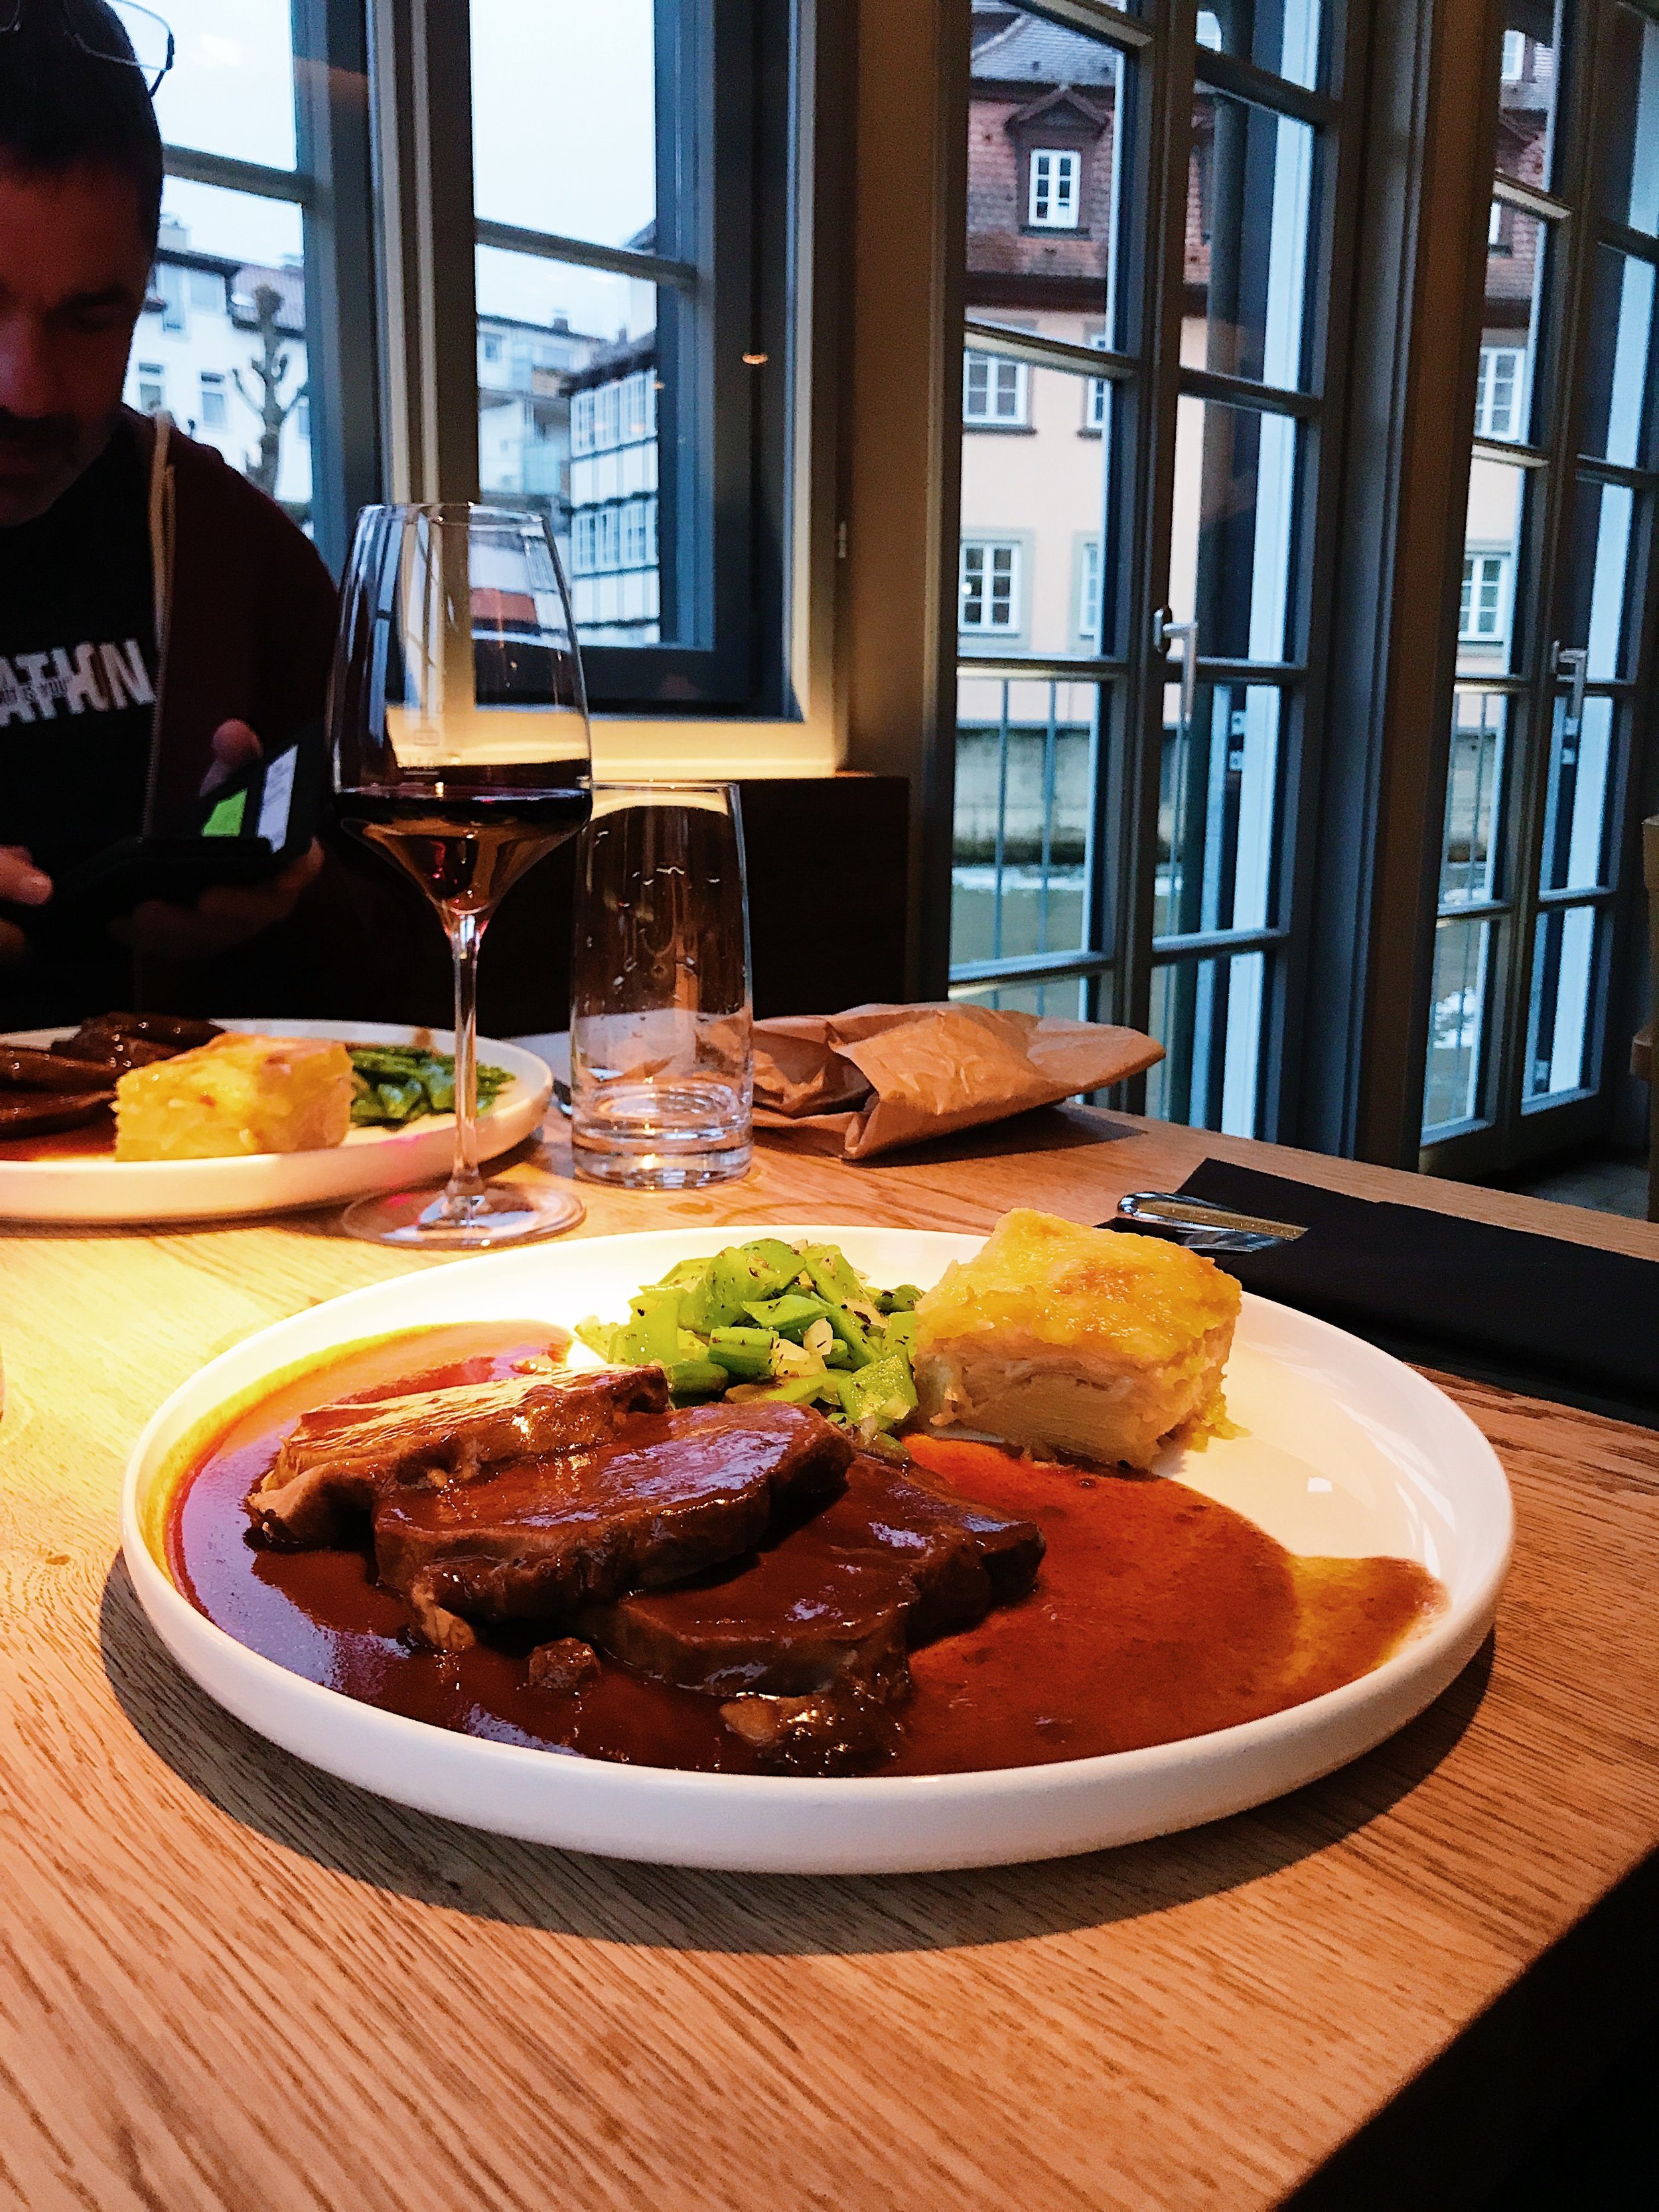 Sauerbraten with Potatoes and Snap Peas at Eckerts.